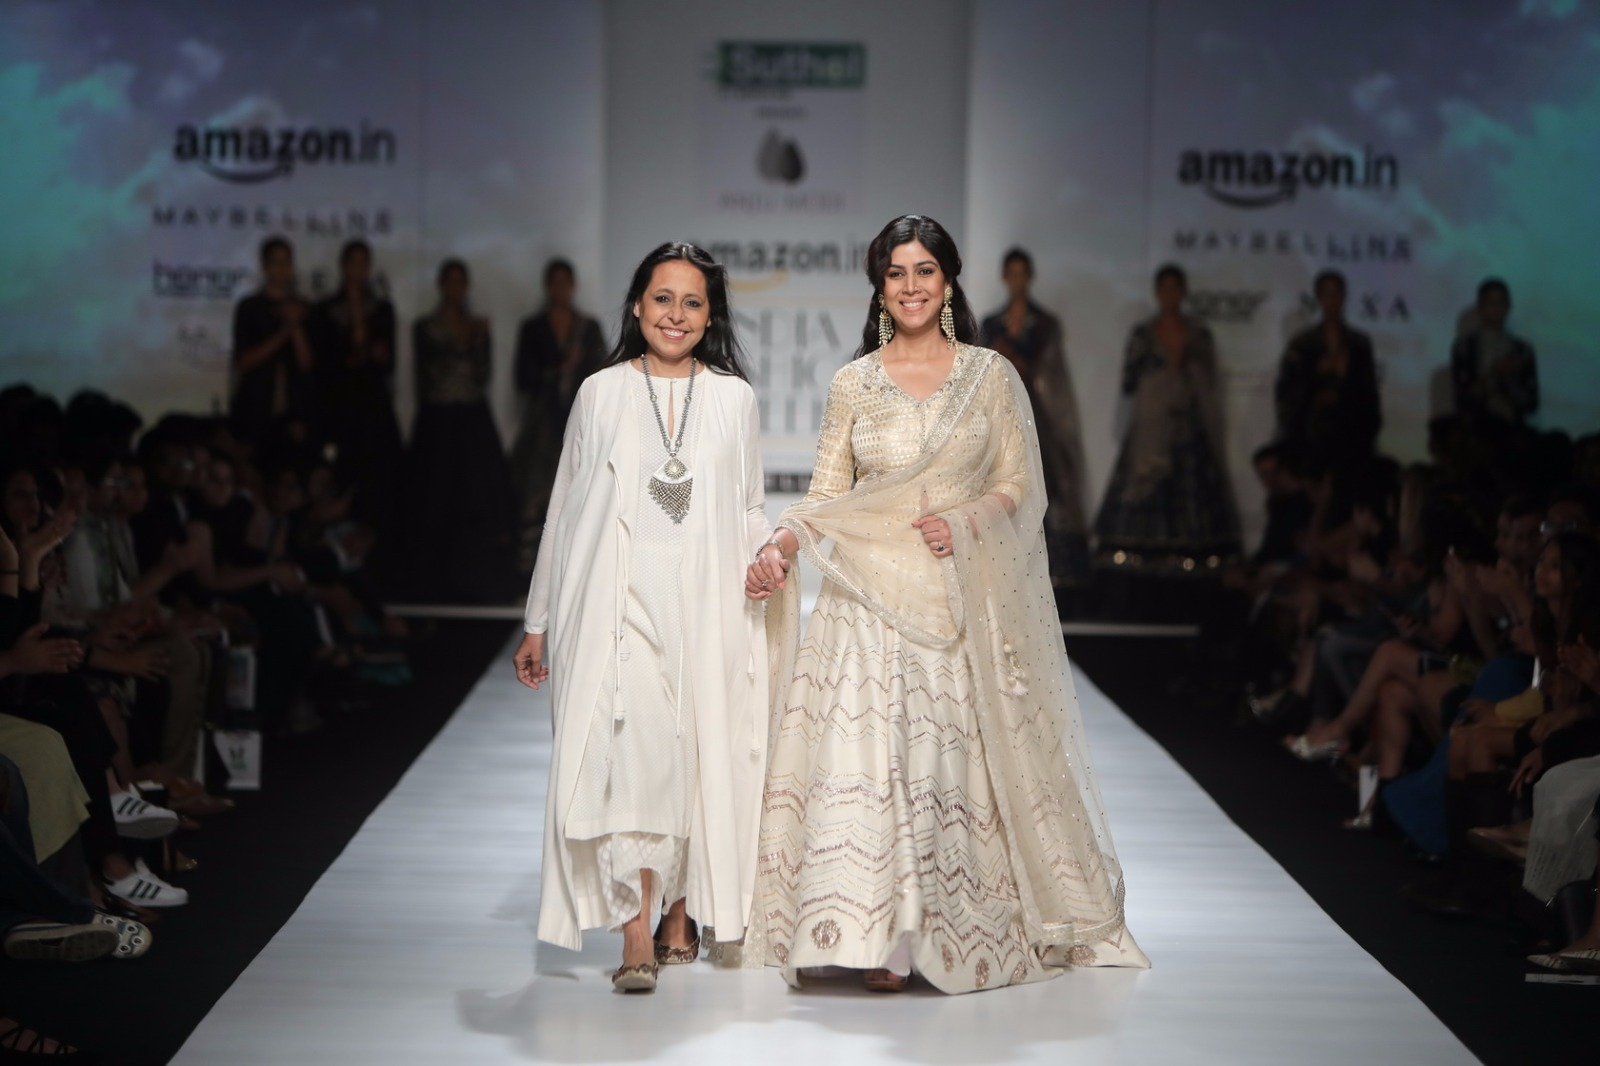 http://www.talksassy.com/wp-content/uploads/2017/03/Amazon-India-Fashion-Week-Autumn-Winter-2017-19.jpg